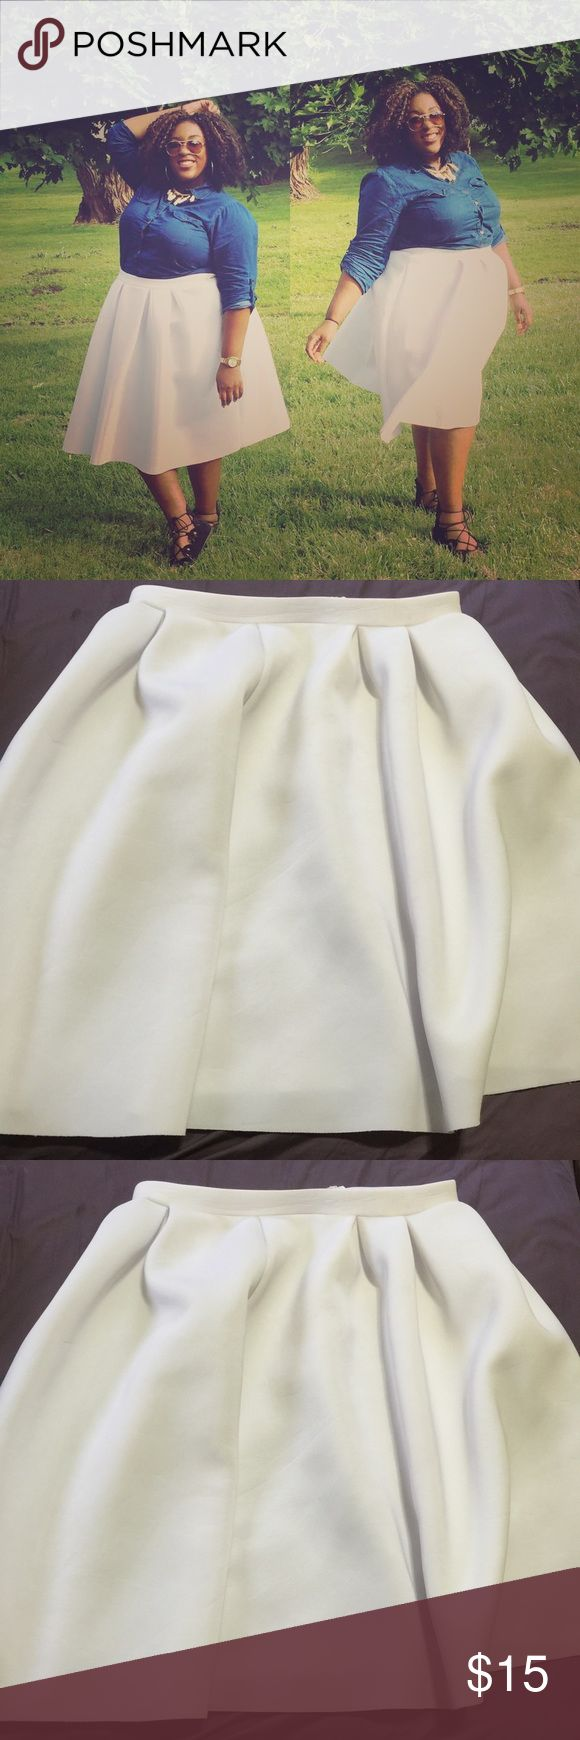 White midi from Charlotte Russe! Who said you can't wear white after Labor Day? After all, we're all wishing for a white Christmas! ;) Size 3X. Ordered originally from Charlotte Russe online. Charlotte Russe Skirts Midi